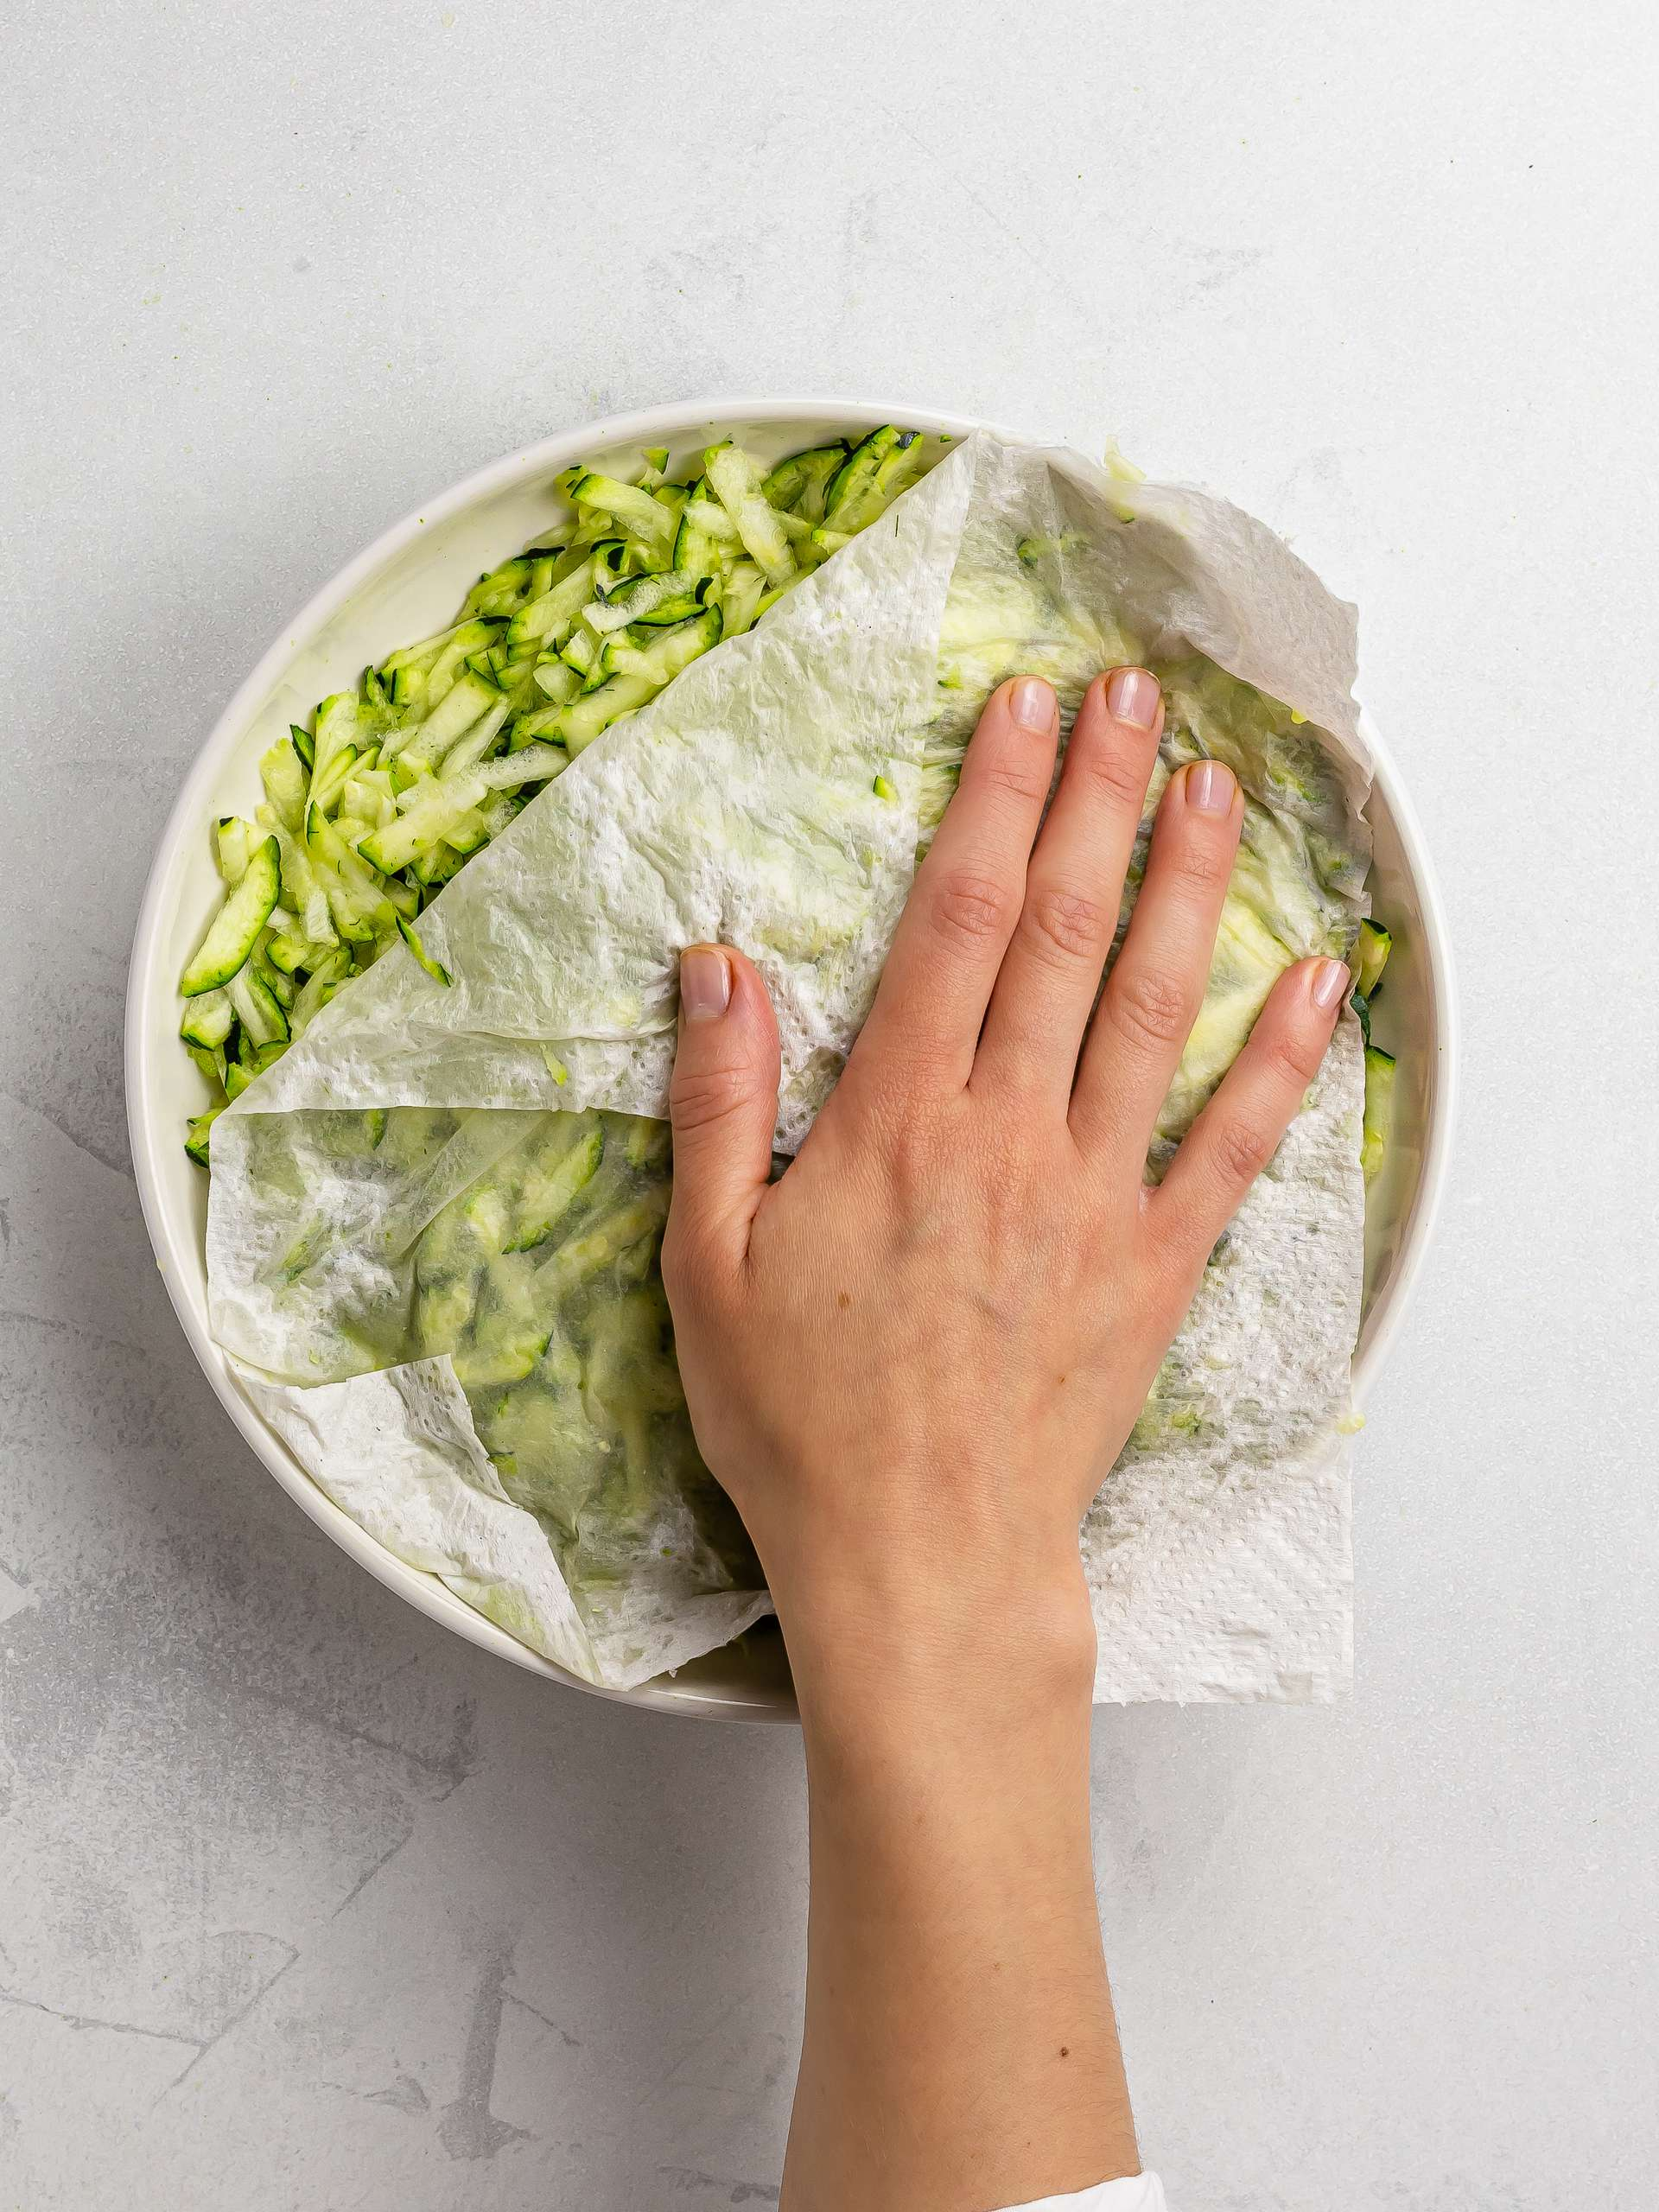 hand patting grated zucchini with kitchen paper